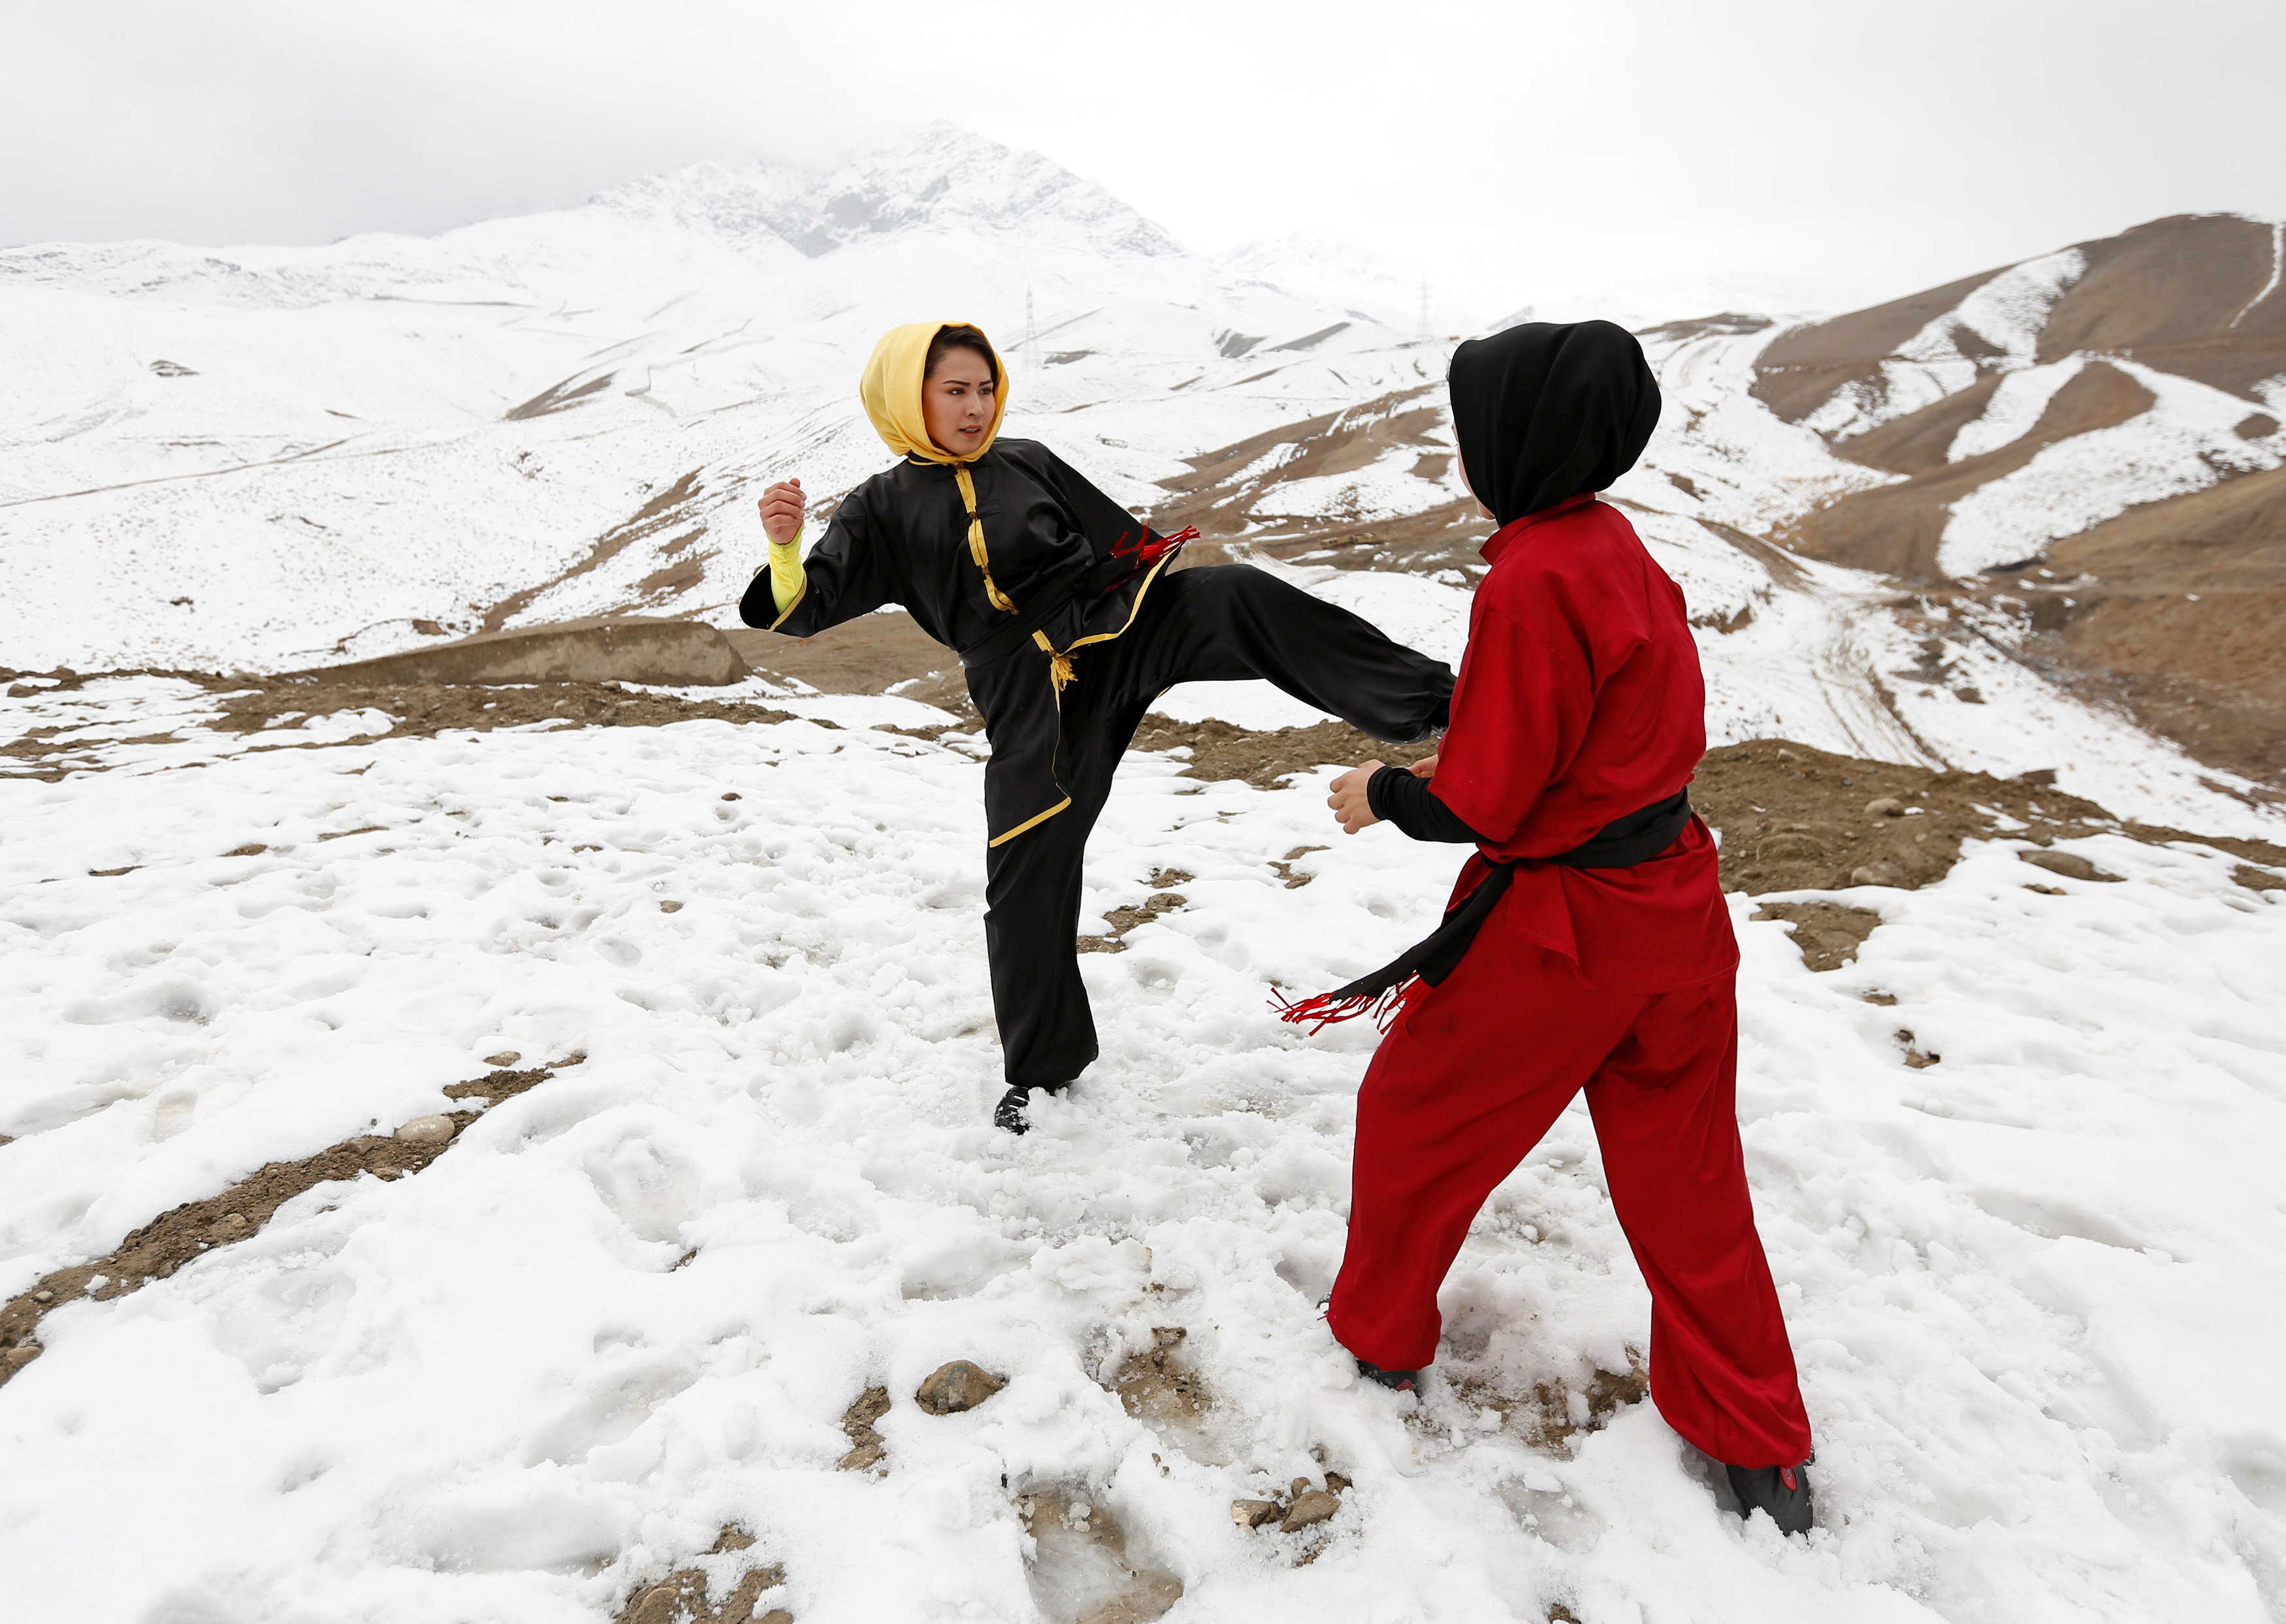 Sima Azimi (L), 20, a trainer at the Shaolin Wushu club, and Shakila Muradi, 18, show their Wushu skills to other students on a hilltop in Kabul, Afghanistan January 29, 2017. REUTERS/Mohammad Ismail